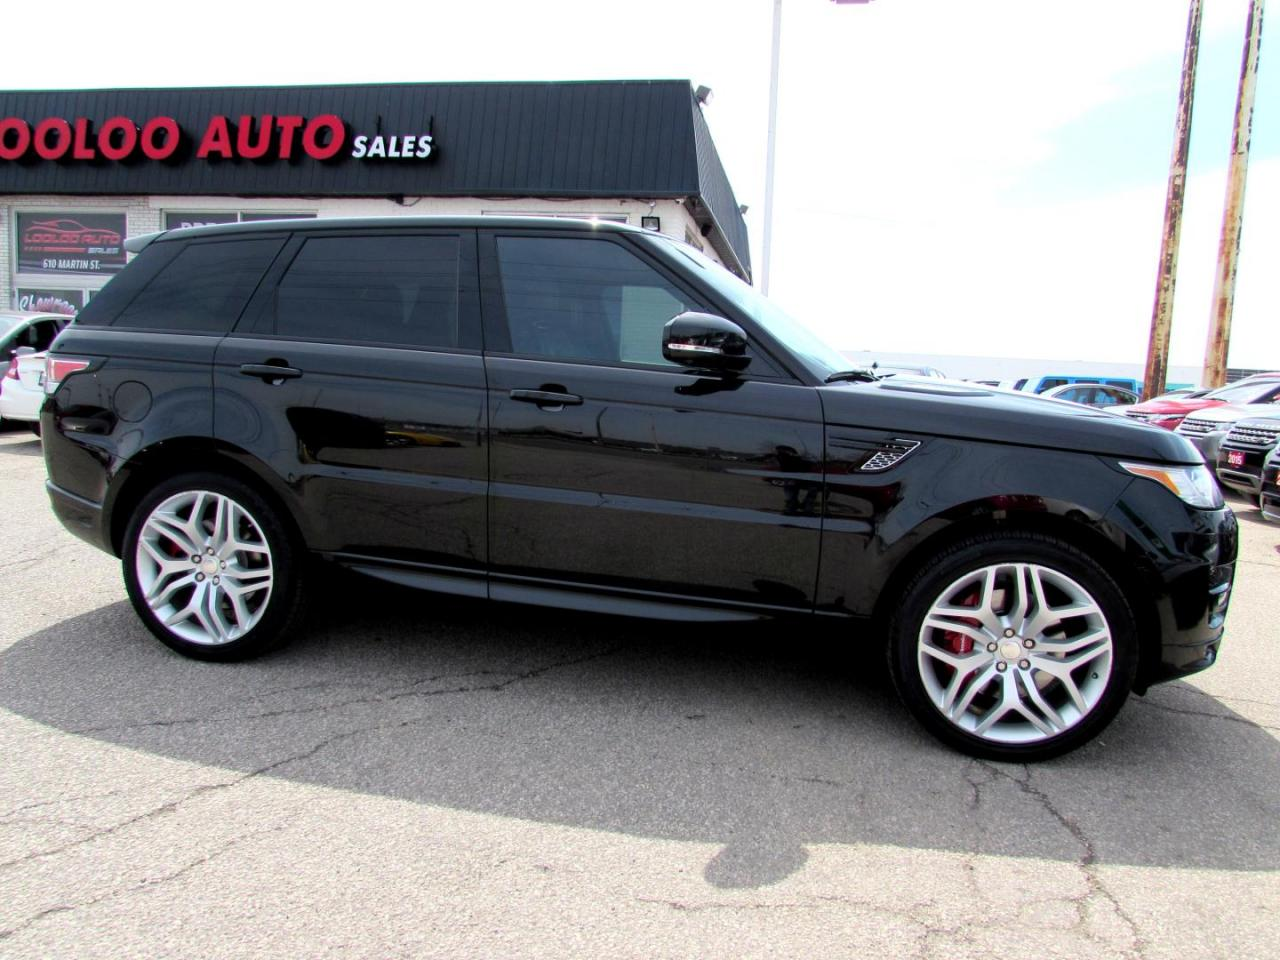 hse premium sport details vehicle large stornoway landrover rover land used range ivory img grey leather